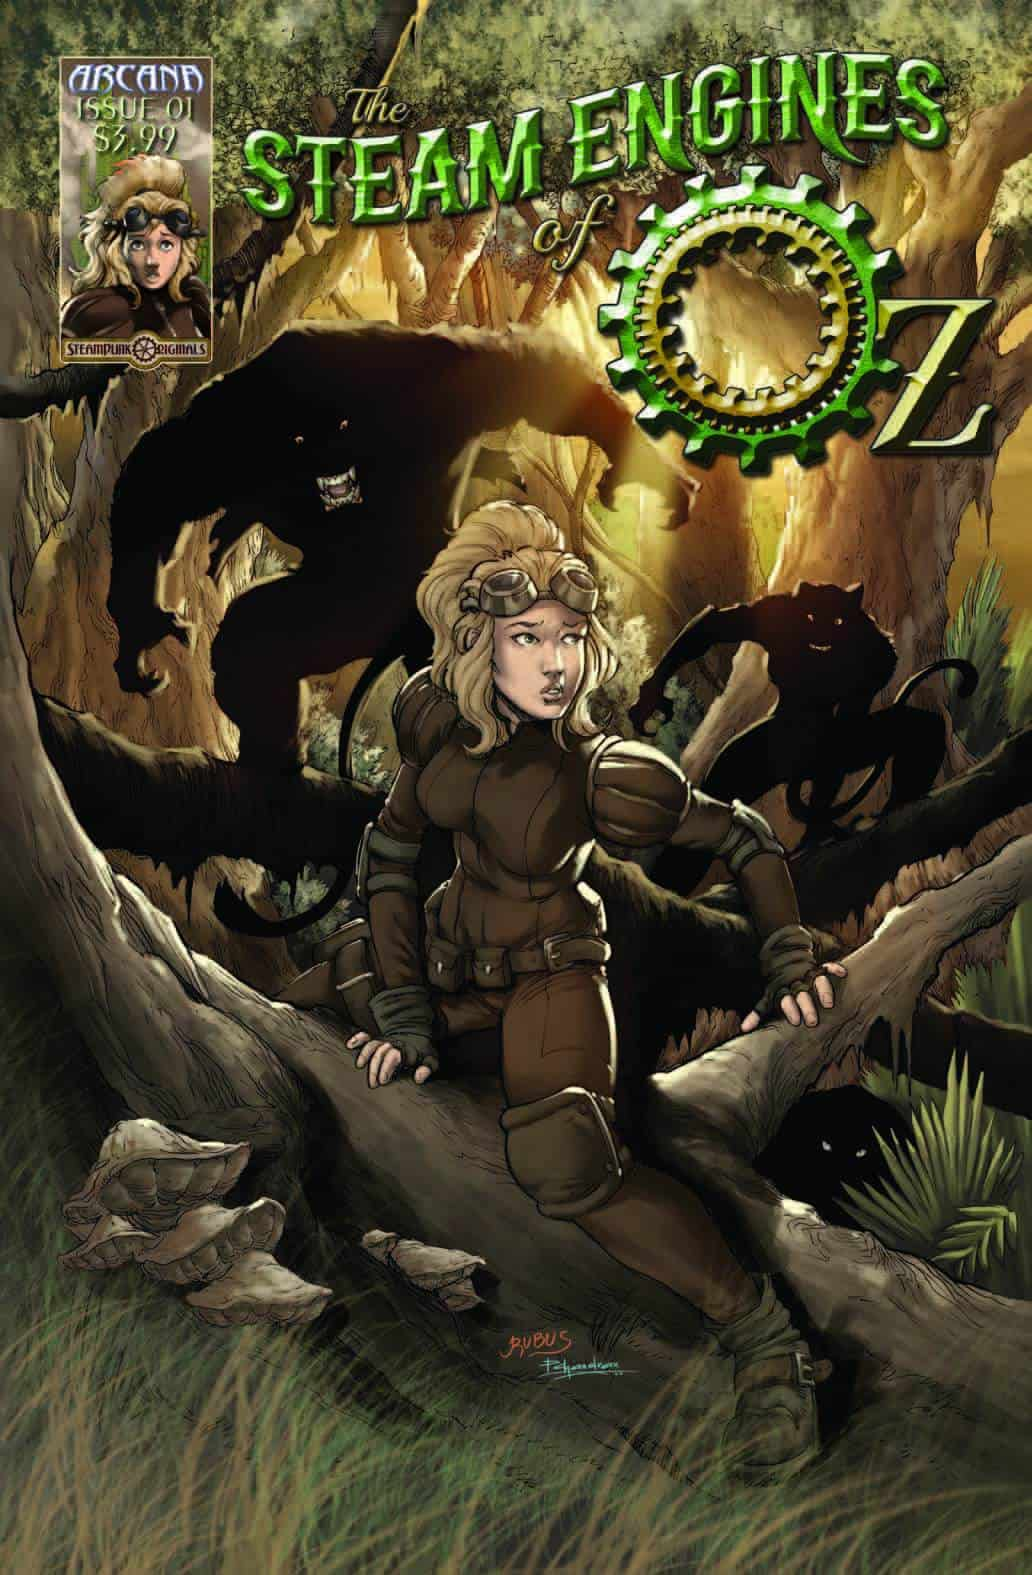 The-Steam-Engines-of-Oz-Cover